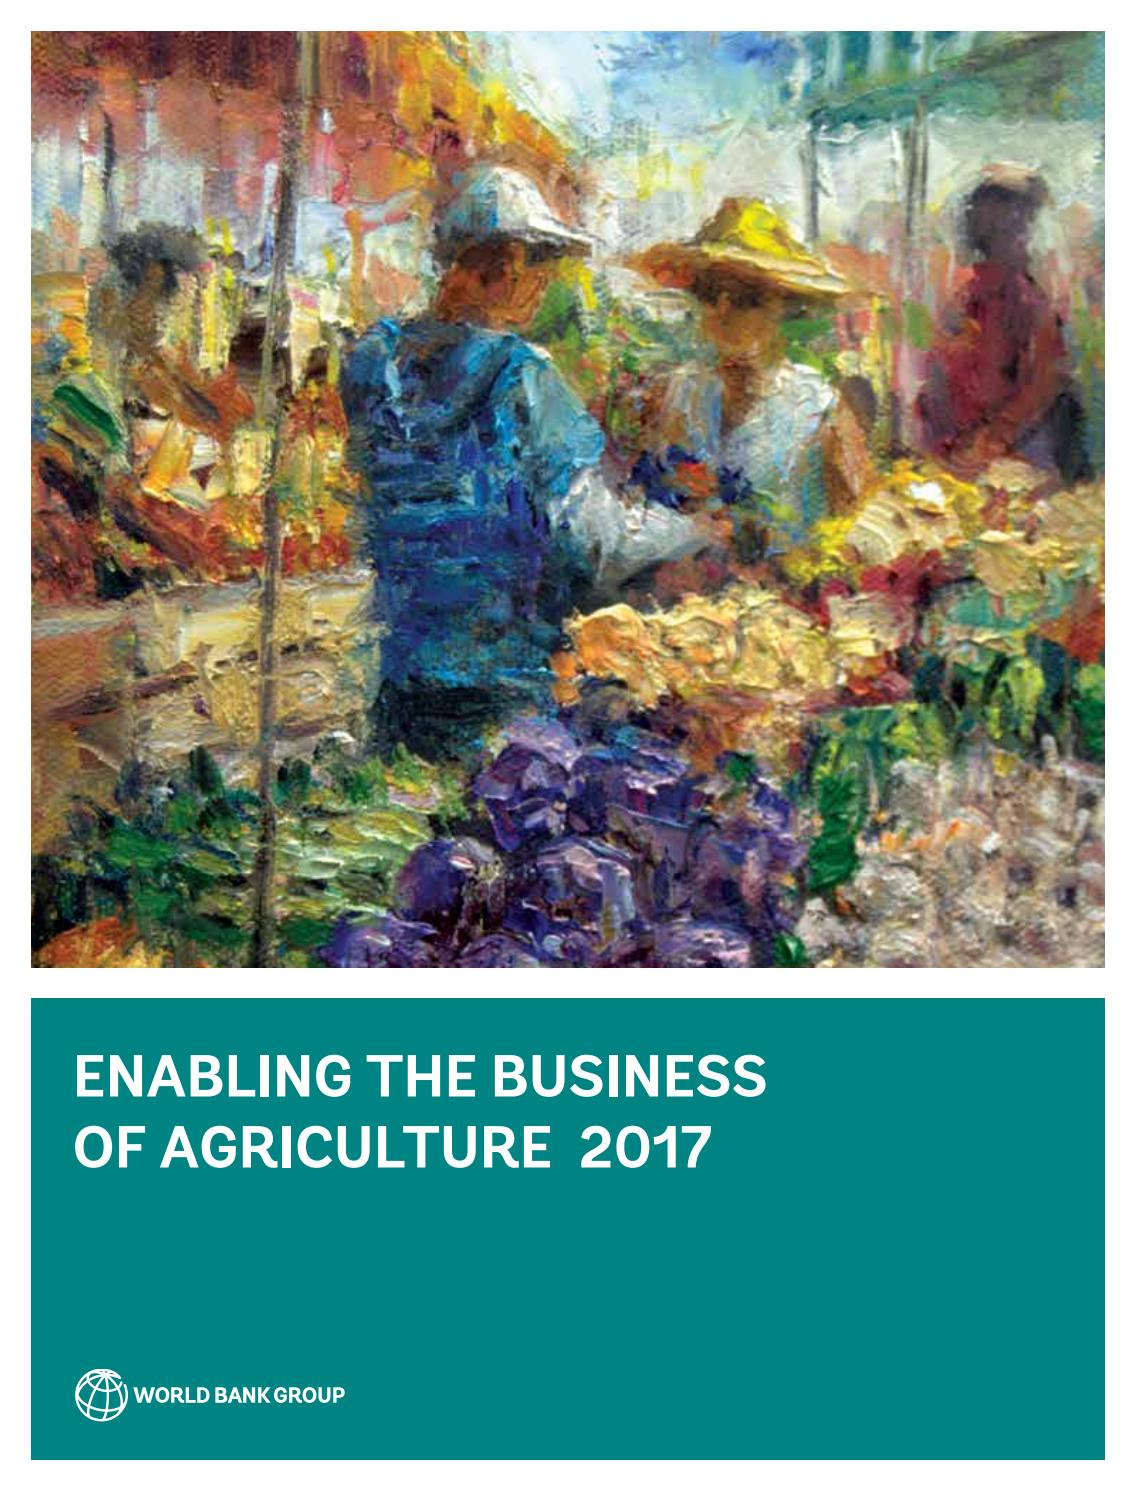 Tatiana perez hsbc bank - Enabling The Business Of Agriculture 2017 By Torres Y Torres Lara Abogados Issuu